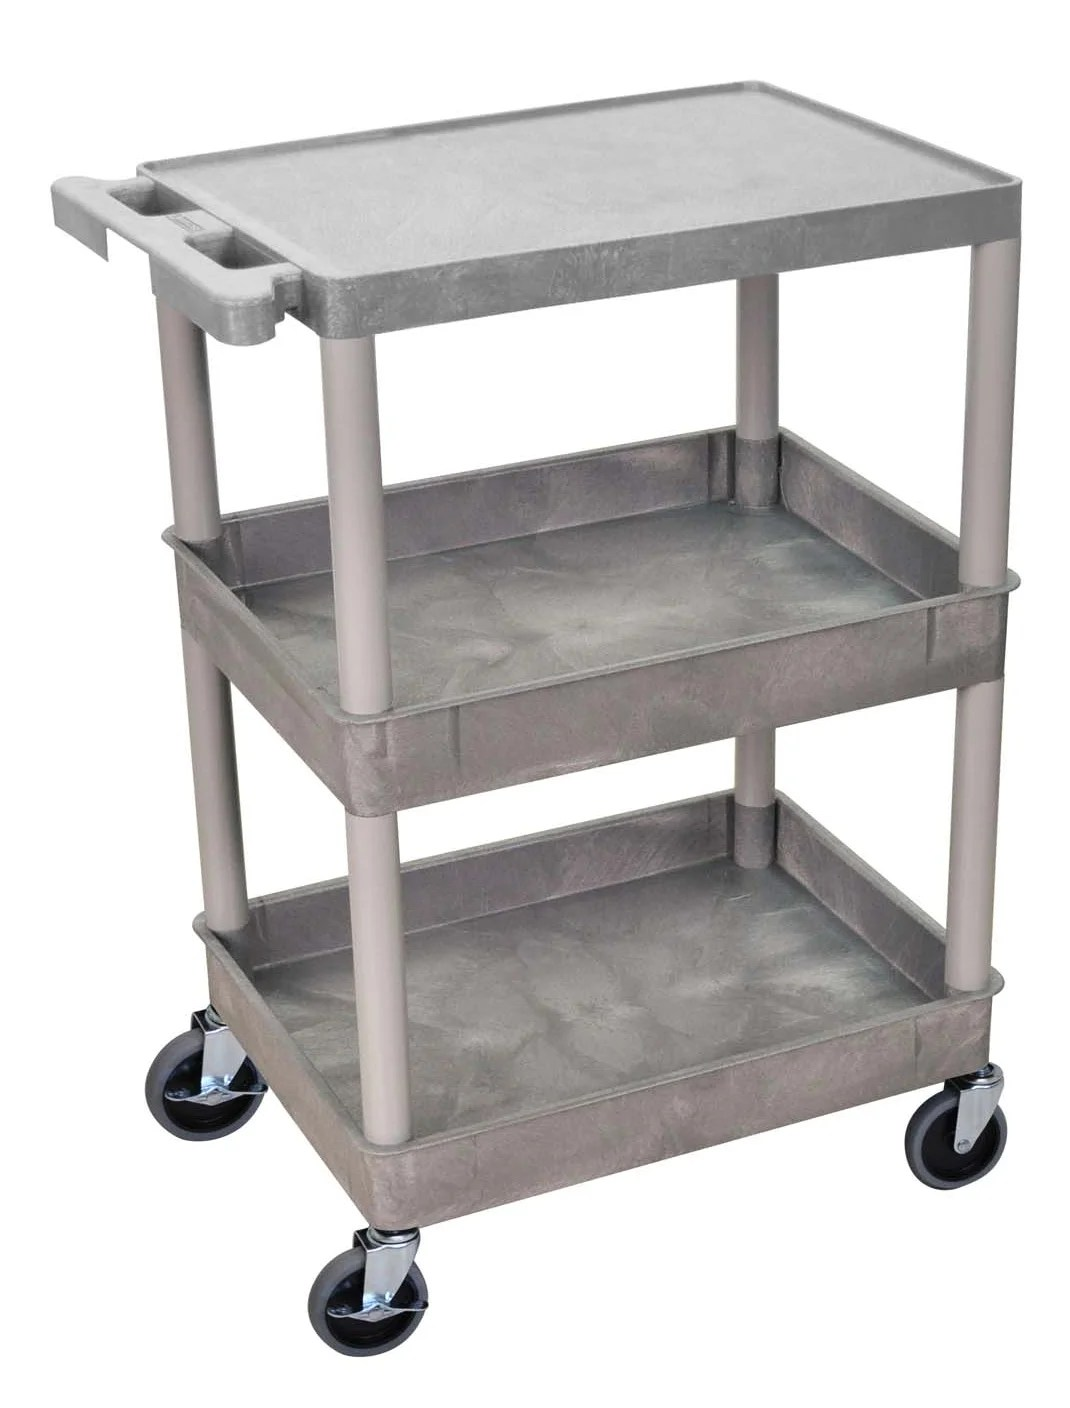 Offex Flat Top And Tub Middle Bottom Shelf Utility Cart